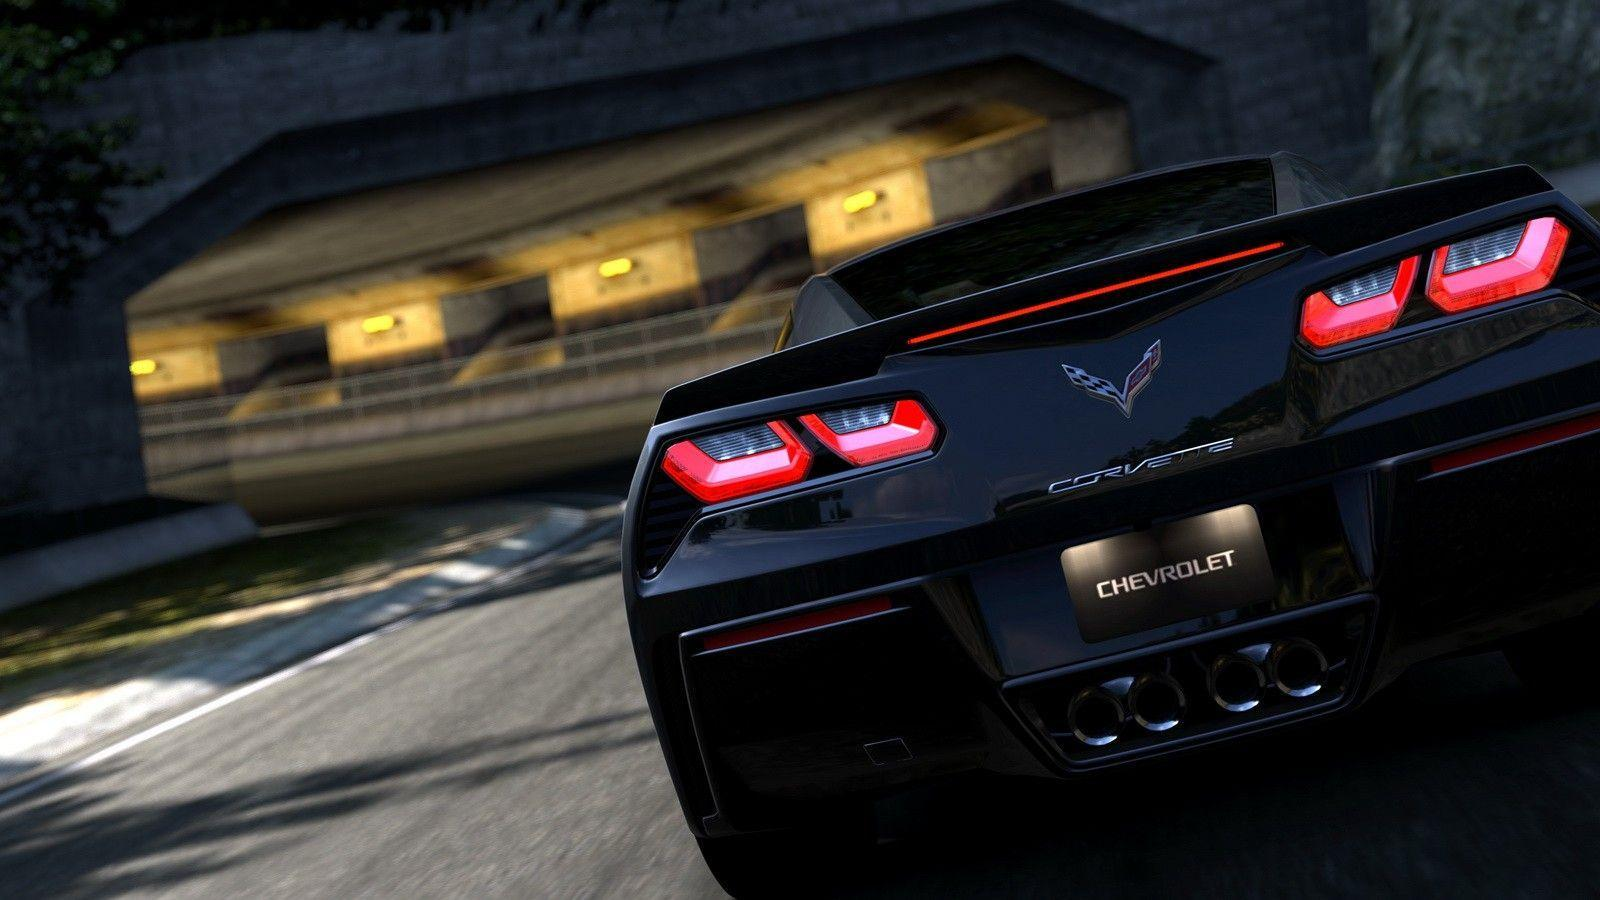 Chevrolet Corvette Wallpapers and Backgrounds Image